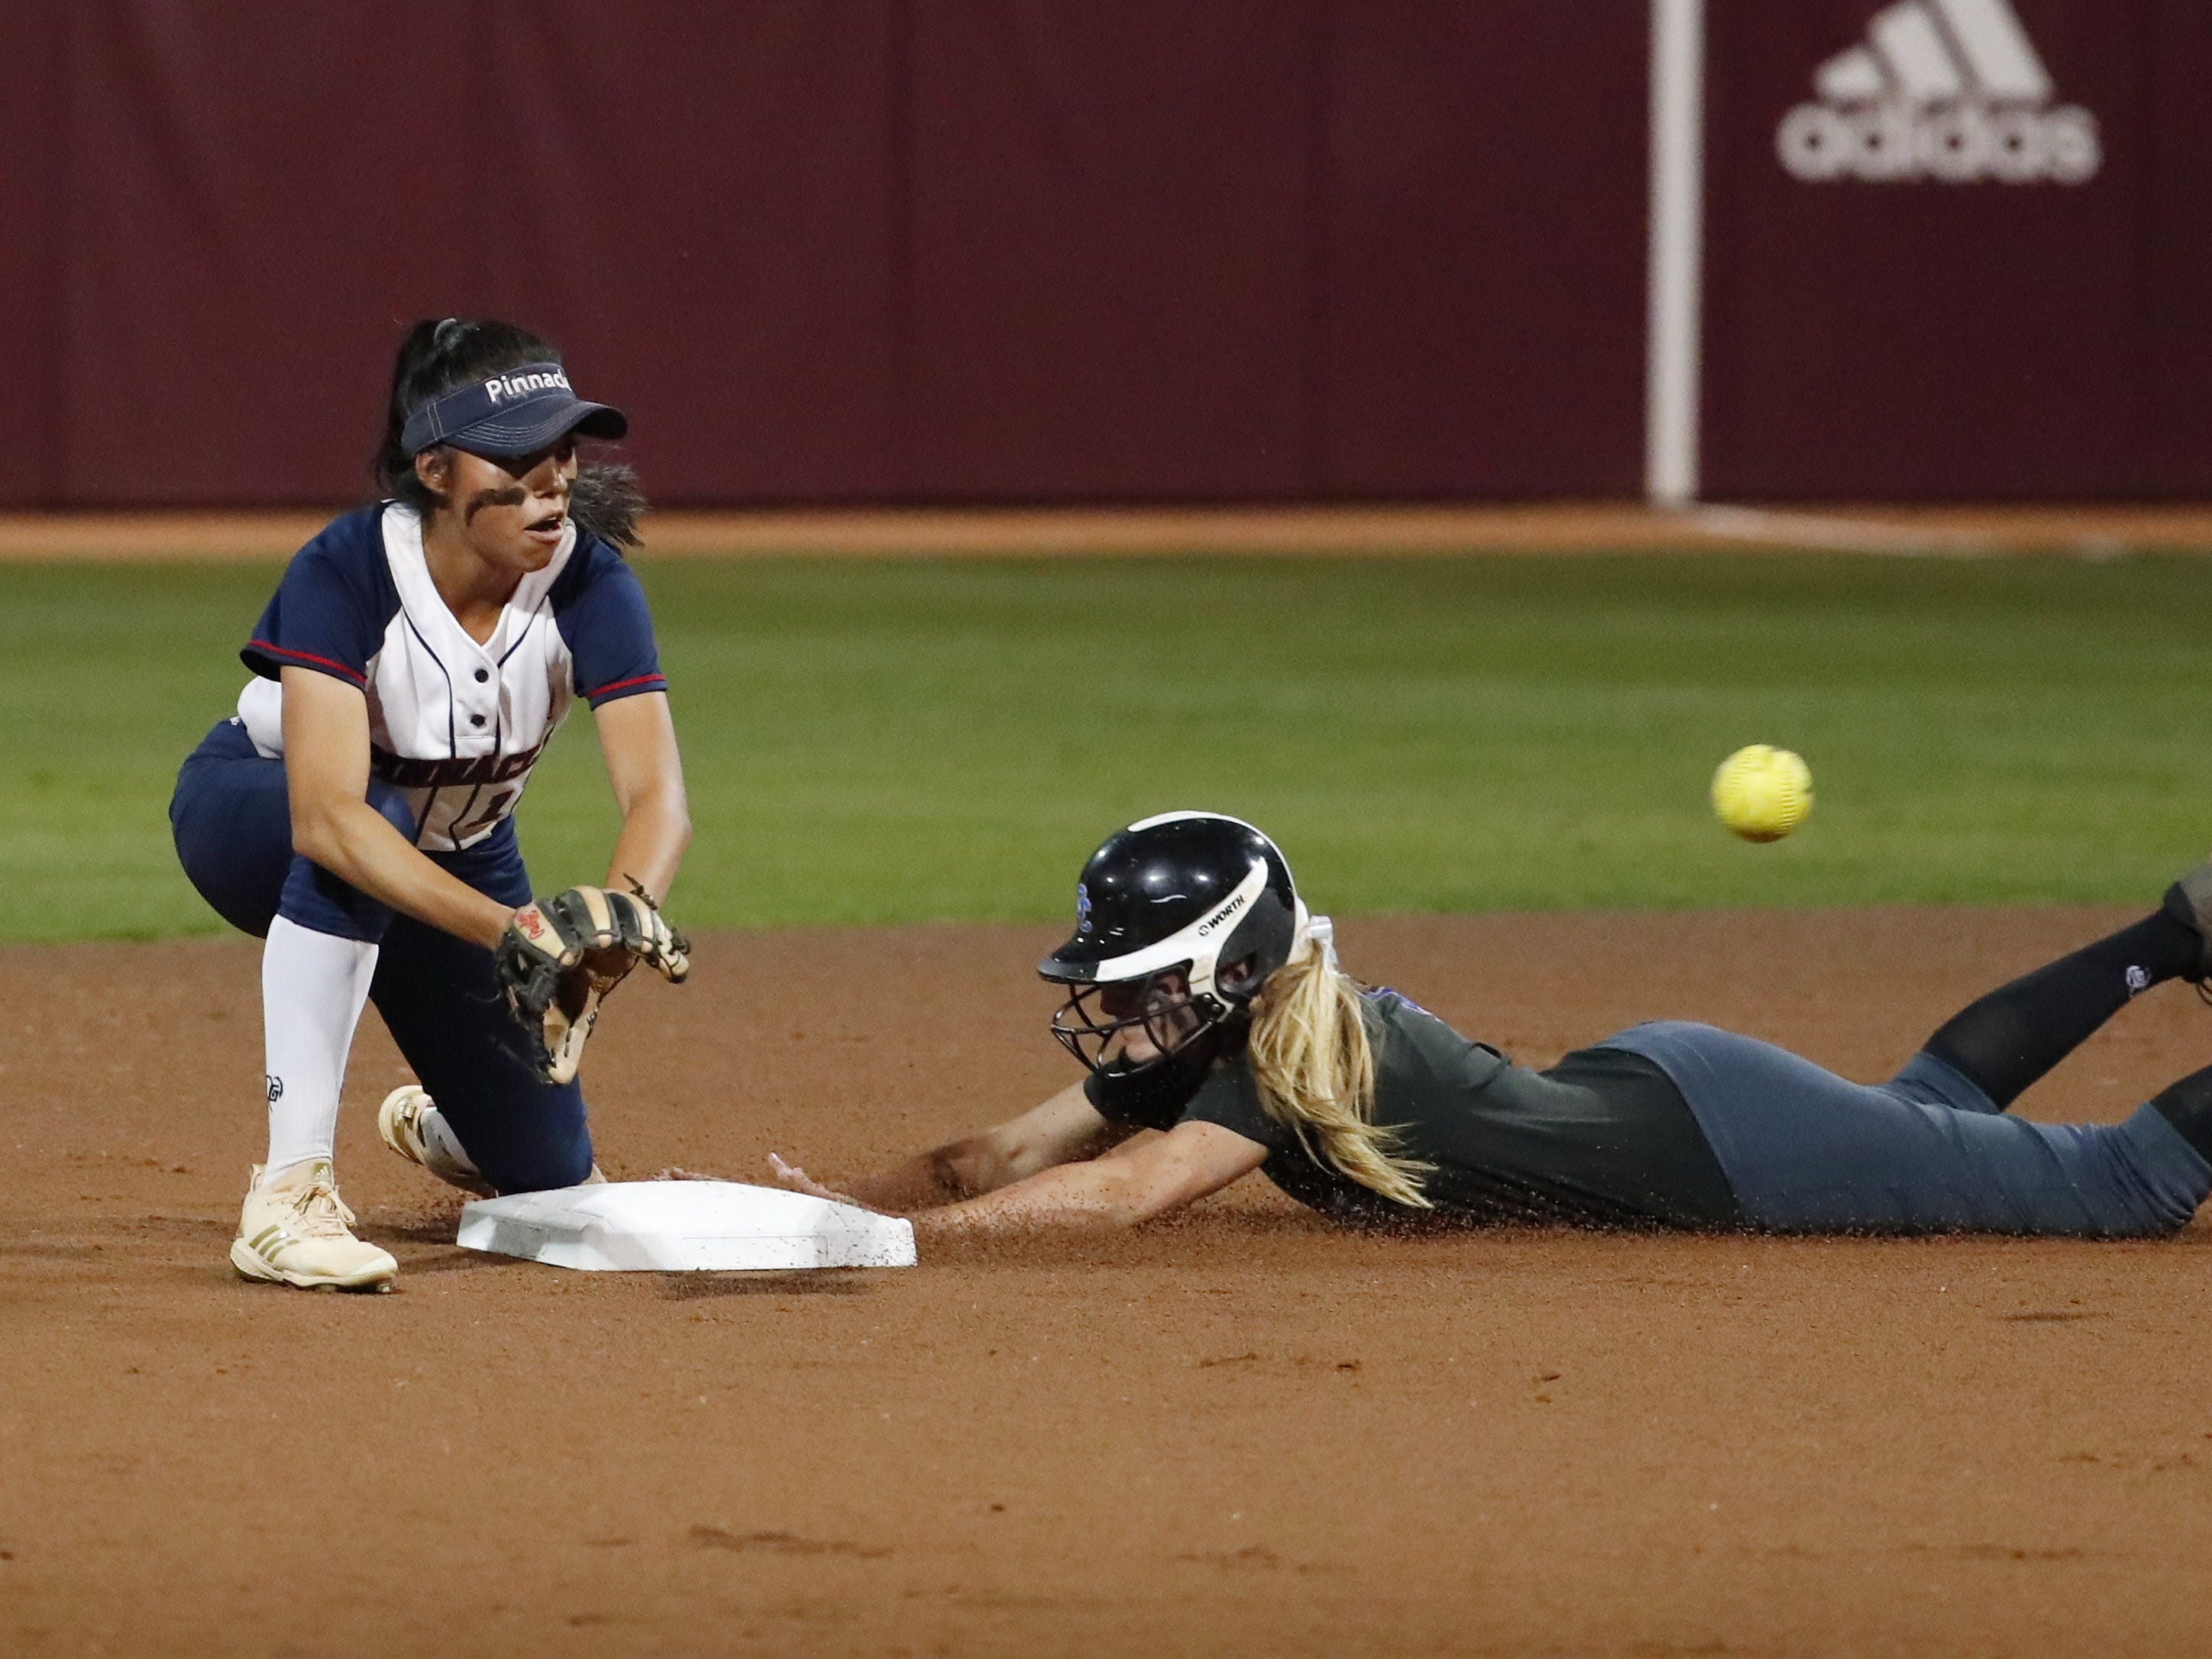 Sandra Day O'Connor's Rylee Holtorf (5) steals second base ahead of the tag by Pinnacle second baseman Tamia Yellowman (13) during the 6A State Softball Championship in Tempe, Ariz. May 13, 2019.